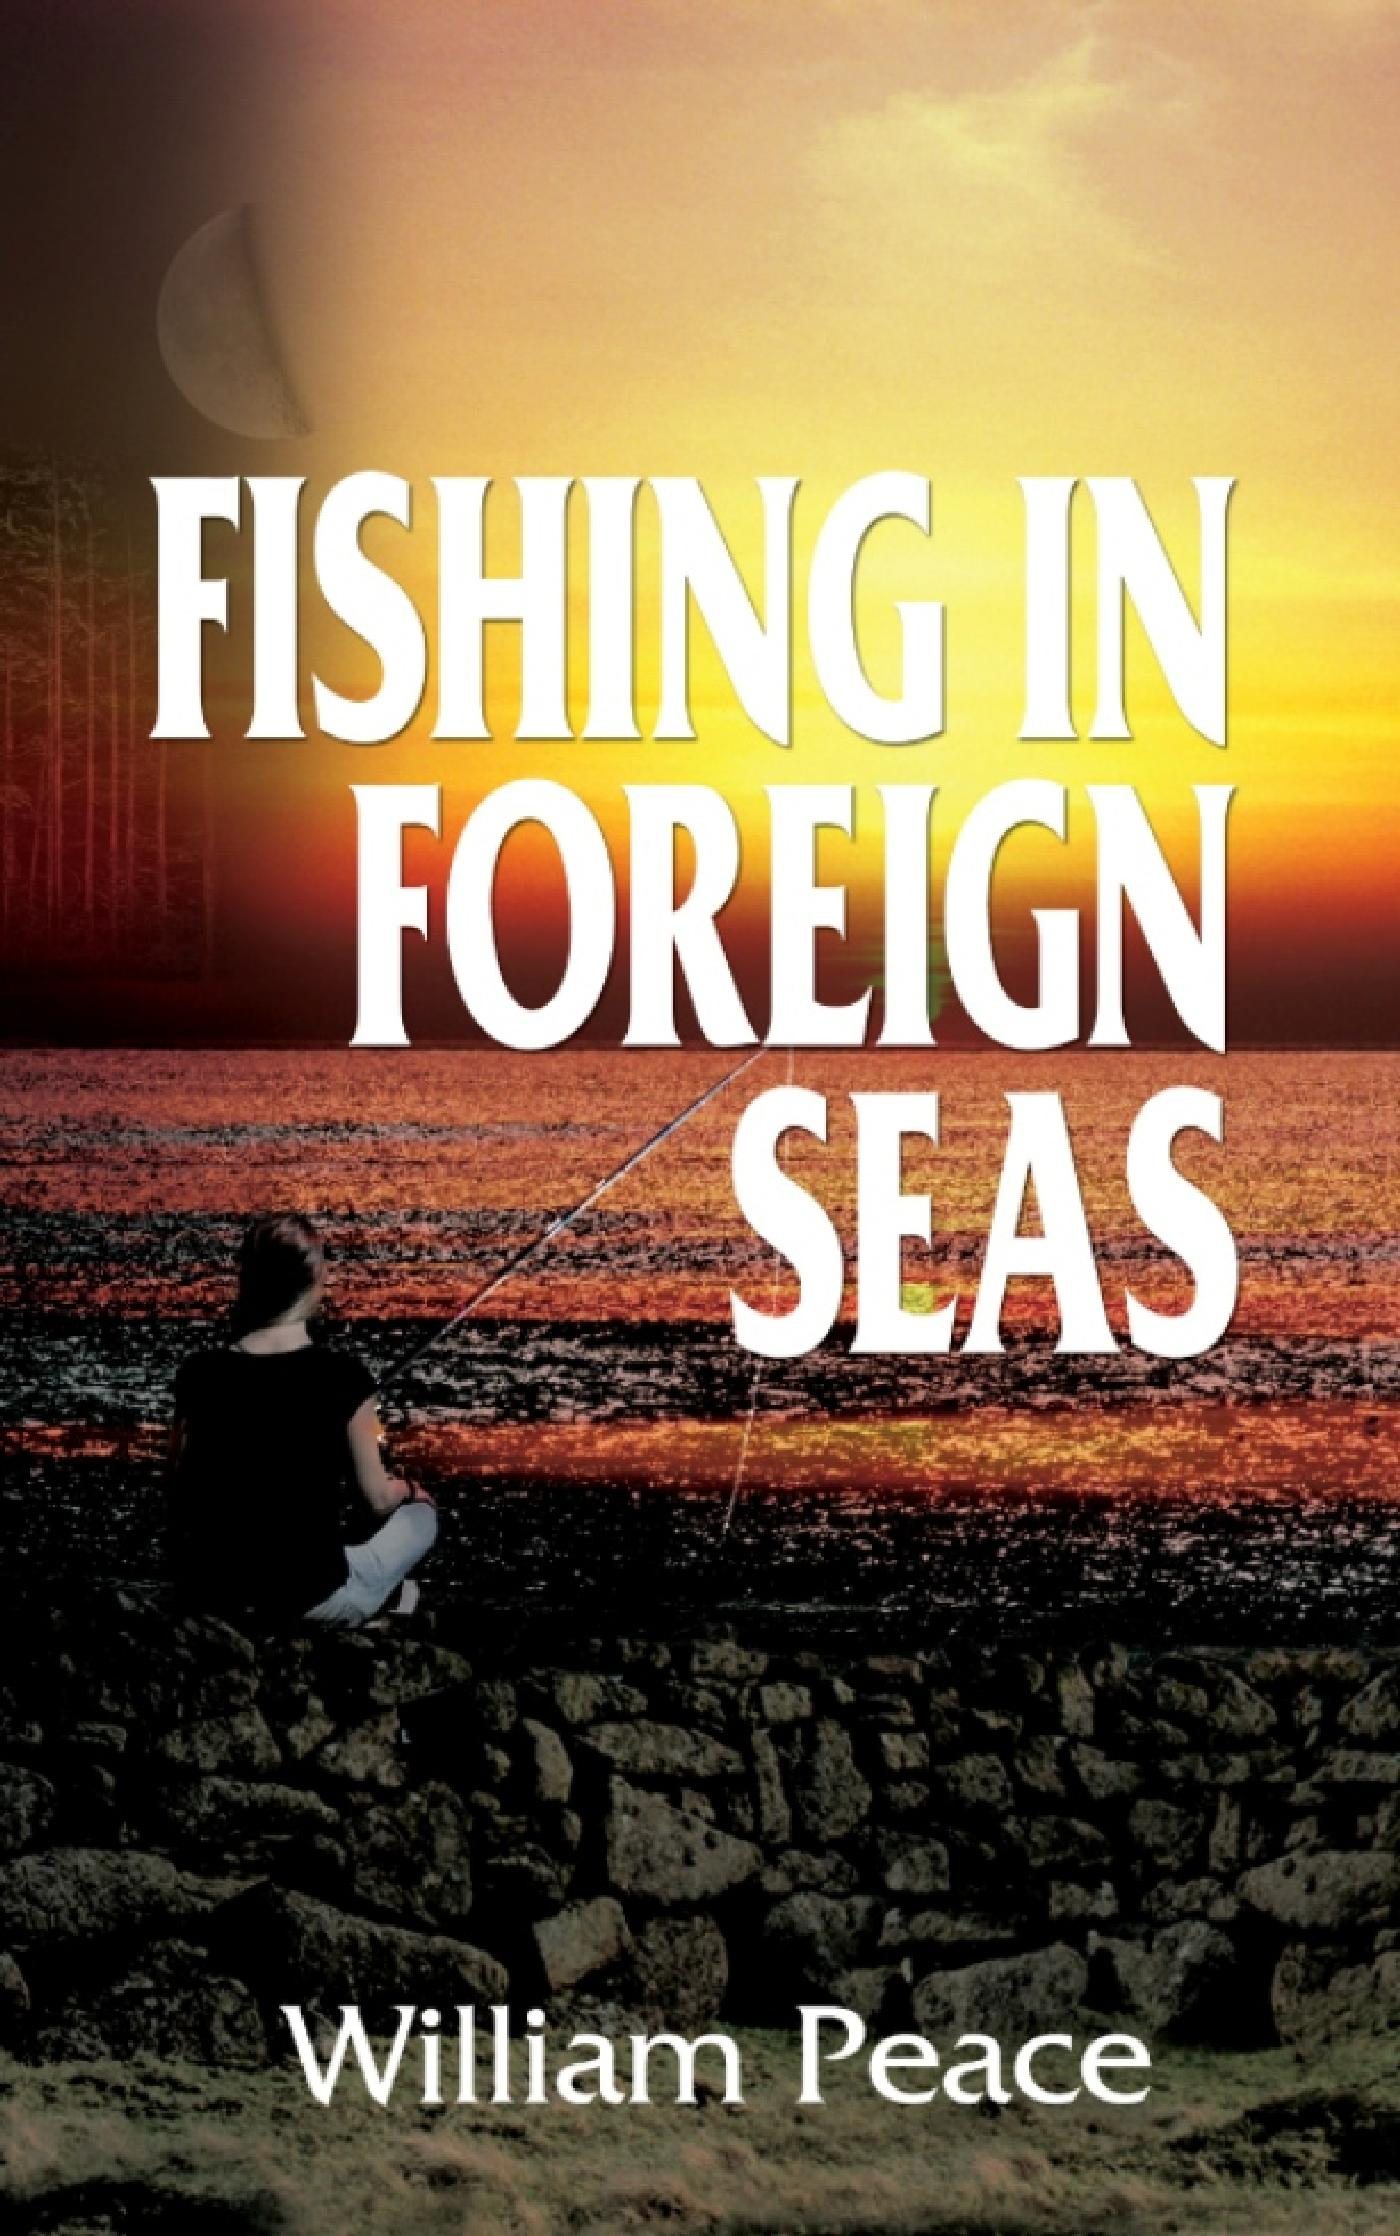 FISHING IN FOREIGN SEAS